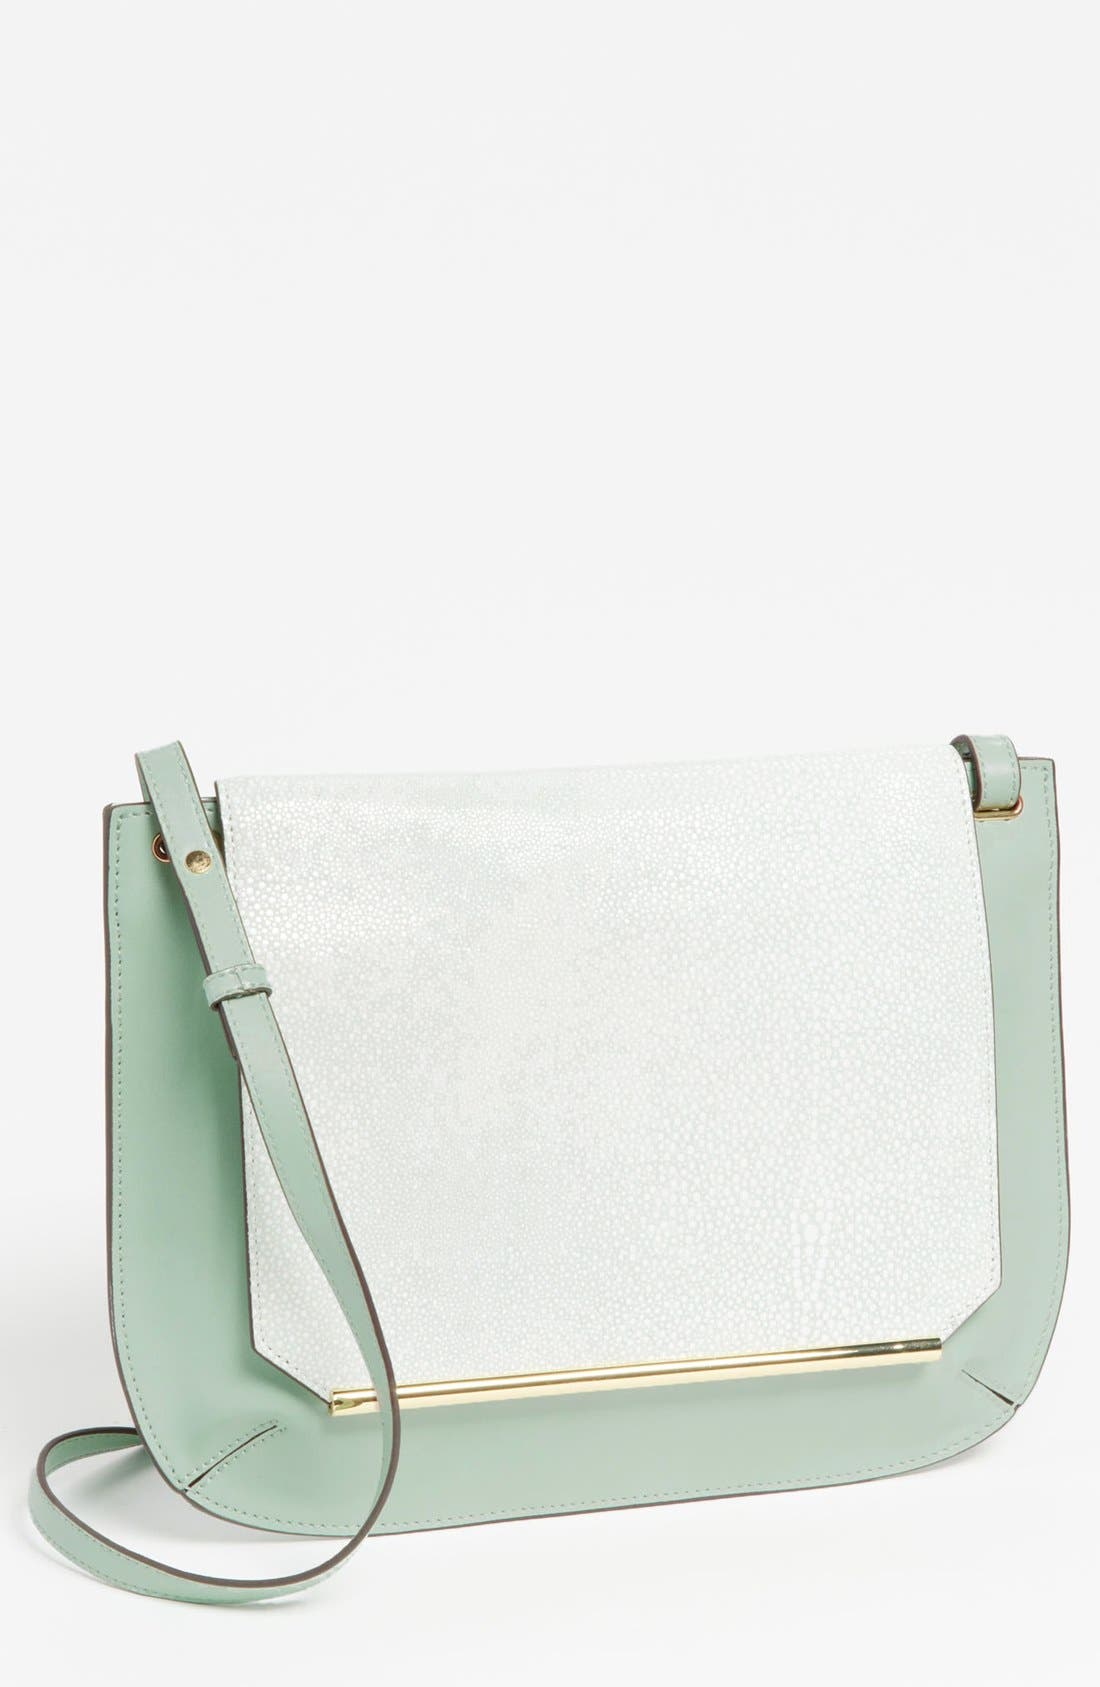 Main Image - Vince Camuto 'Sabin' Crossbody Bag